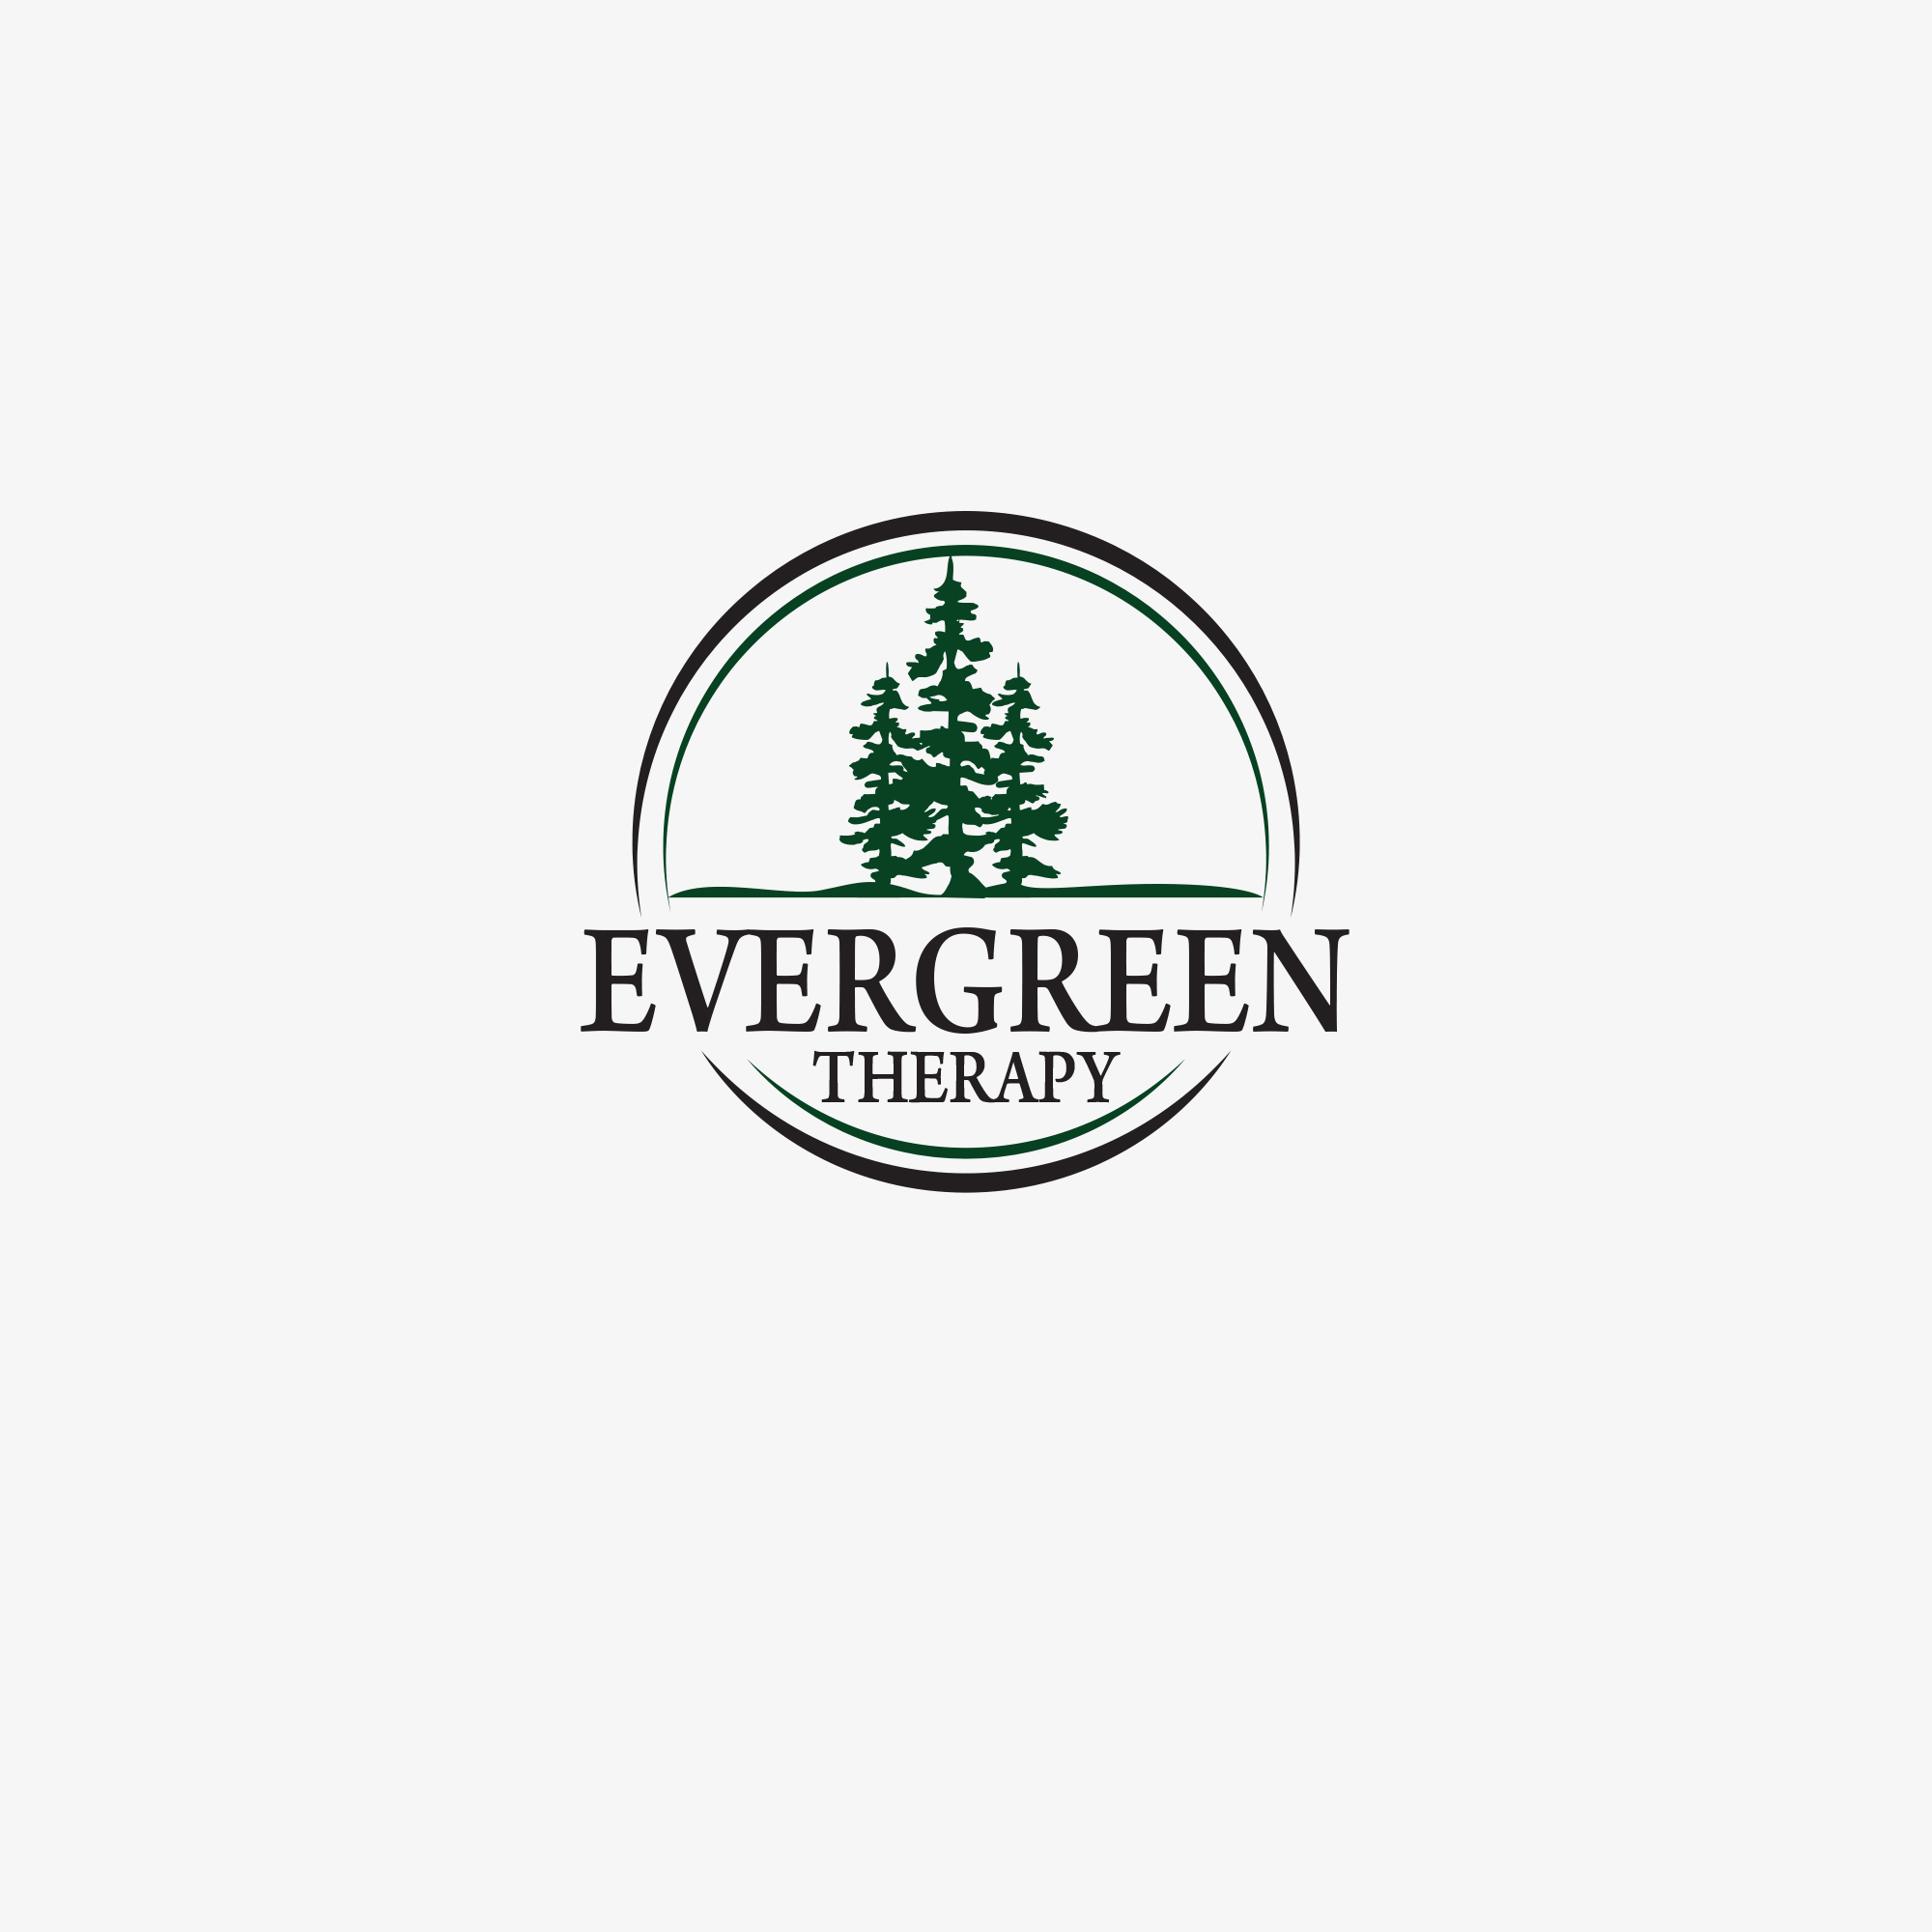 Evergreen Therapy - design #1764837